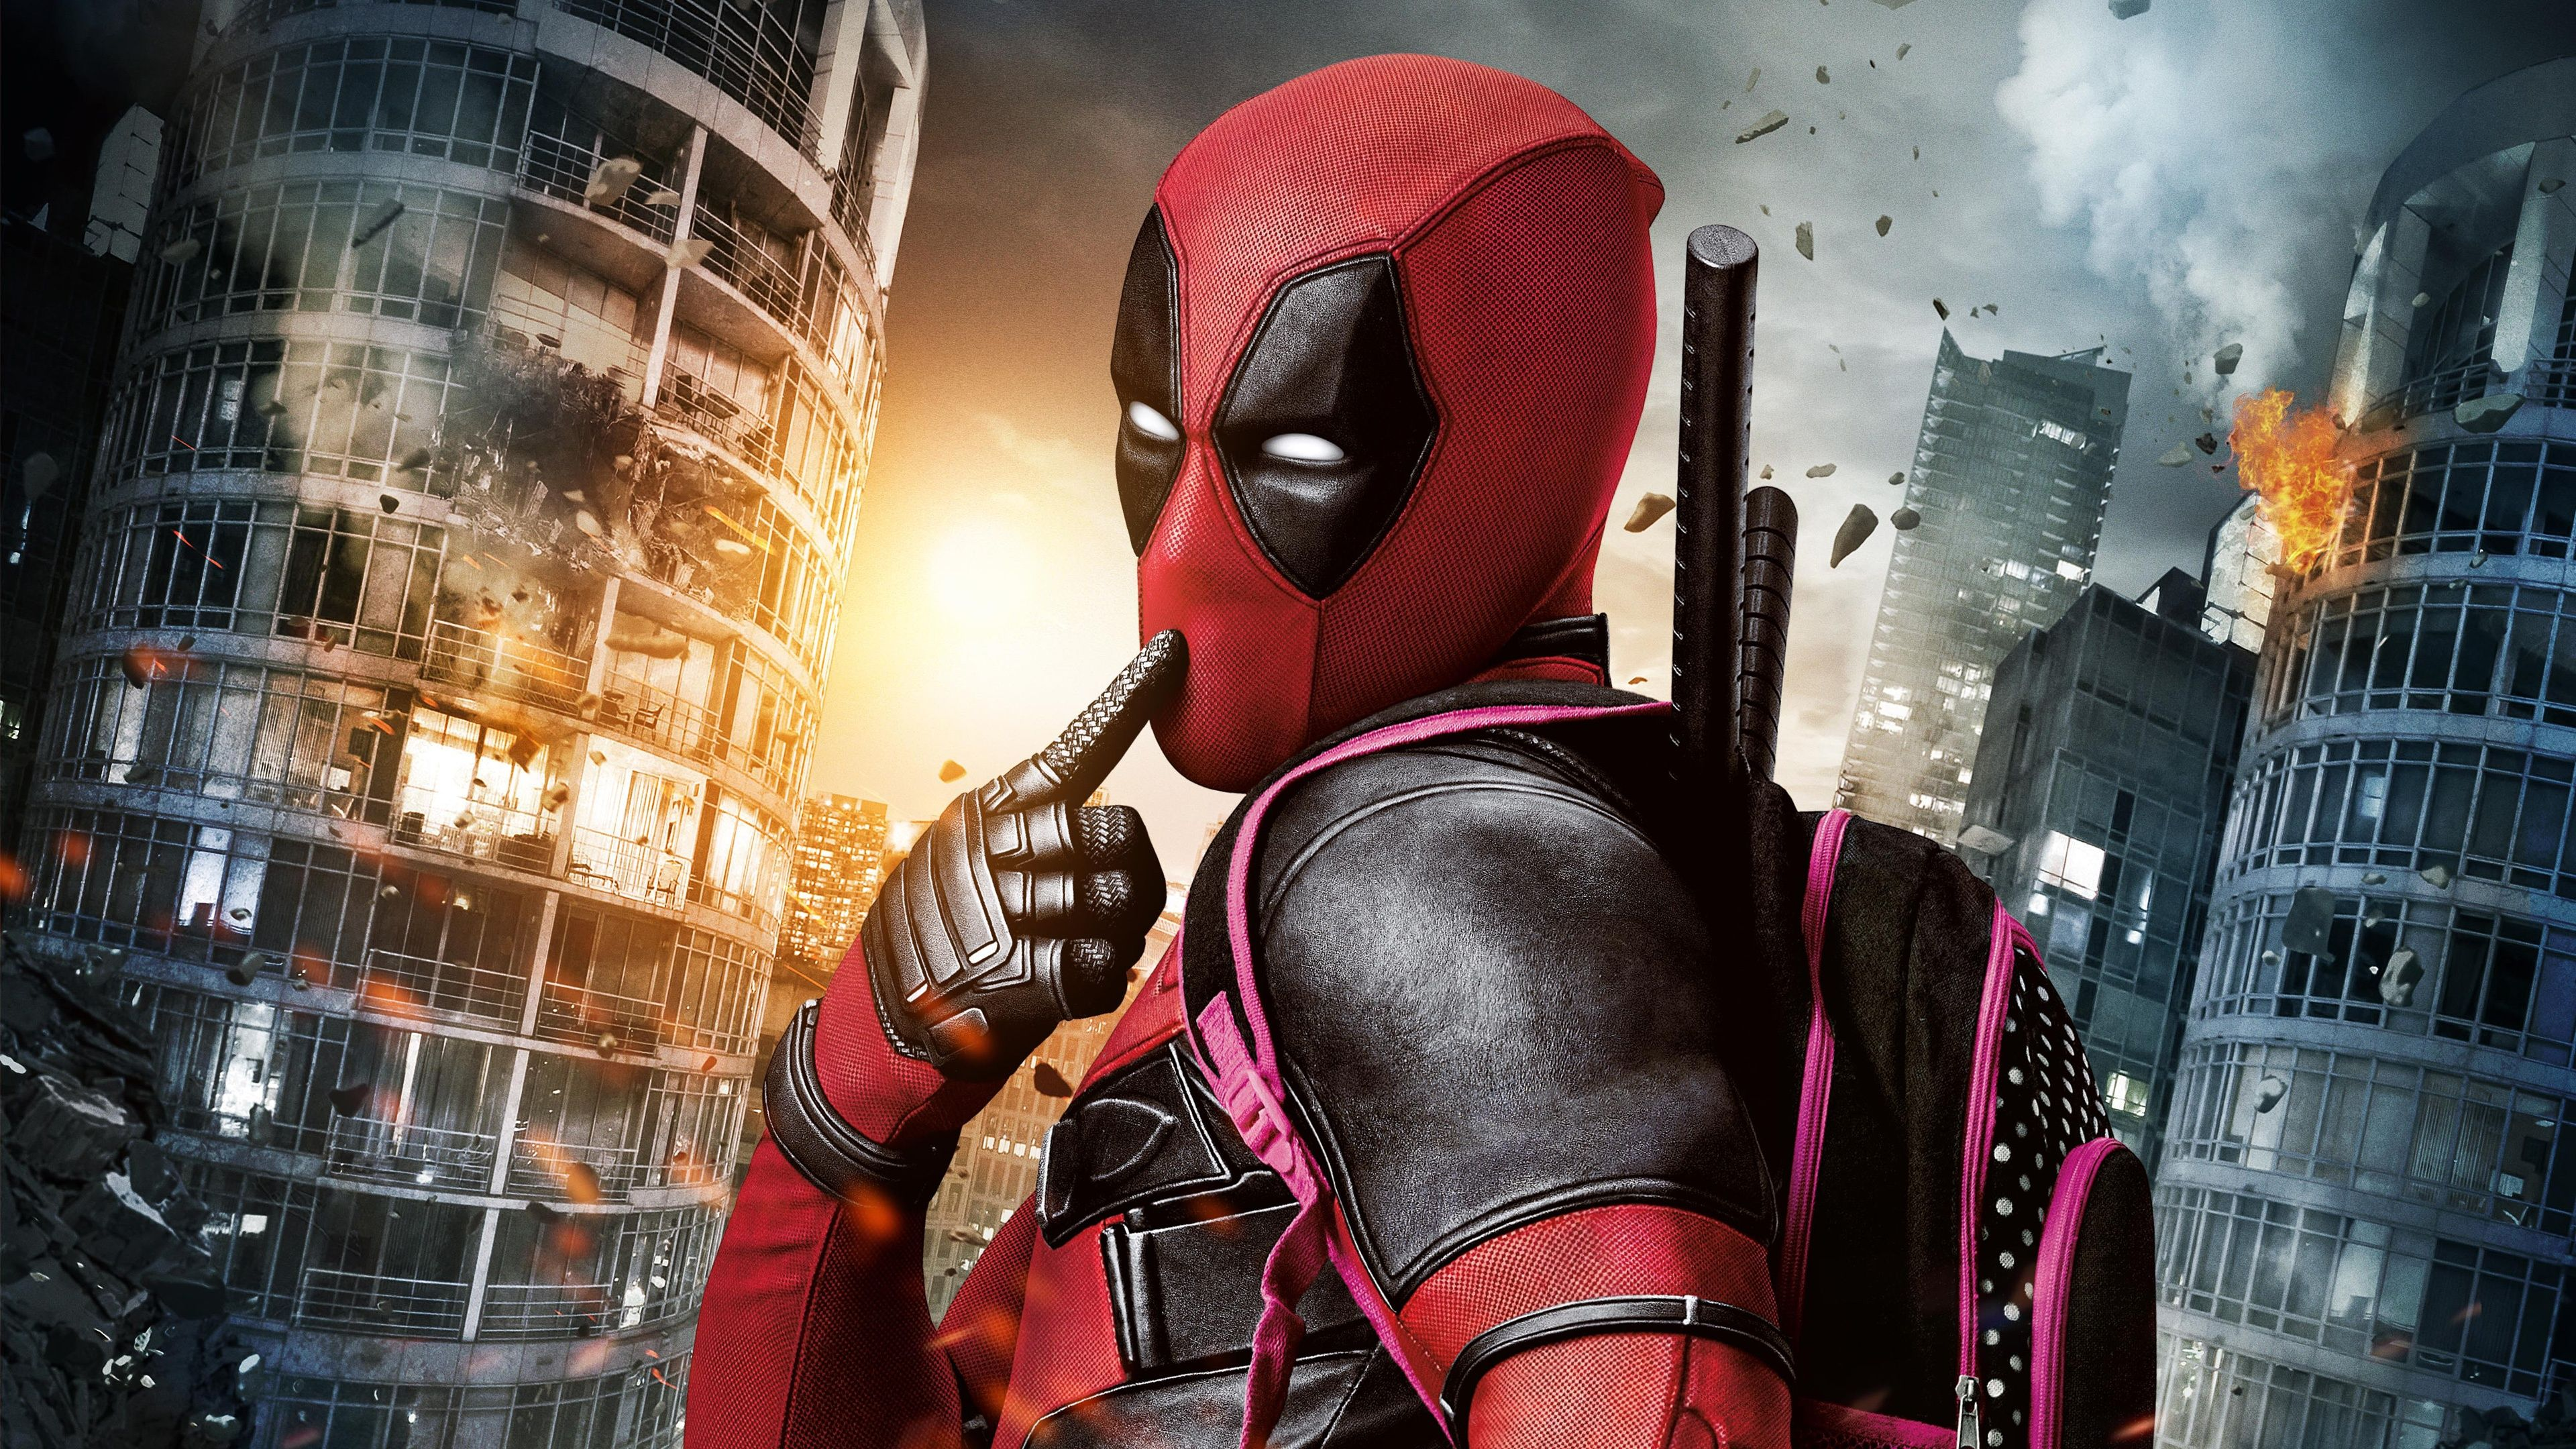 Deadpool Movie Wallpapers   Top Deadpool Movie Backgrounds